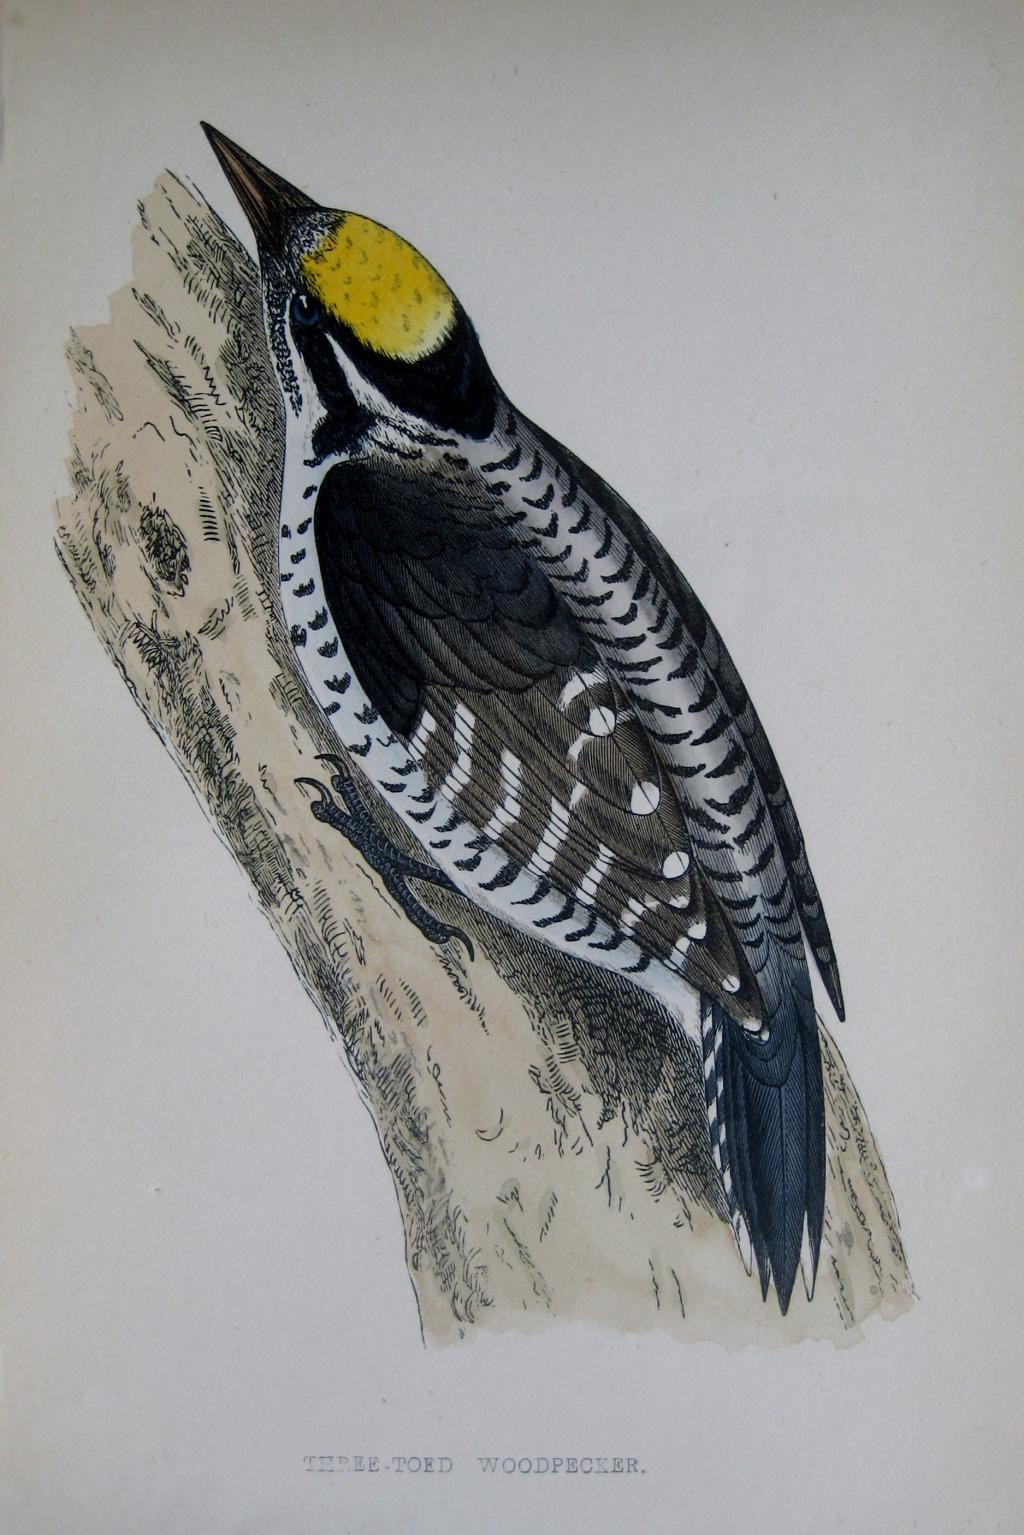 WOODPECKER by REV F.O. MORRIS c1851